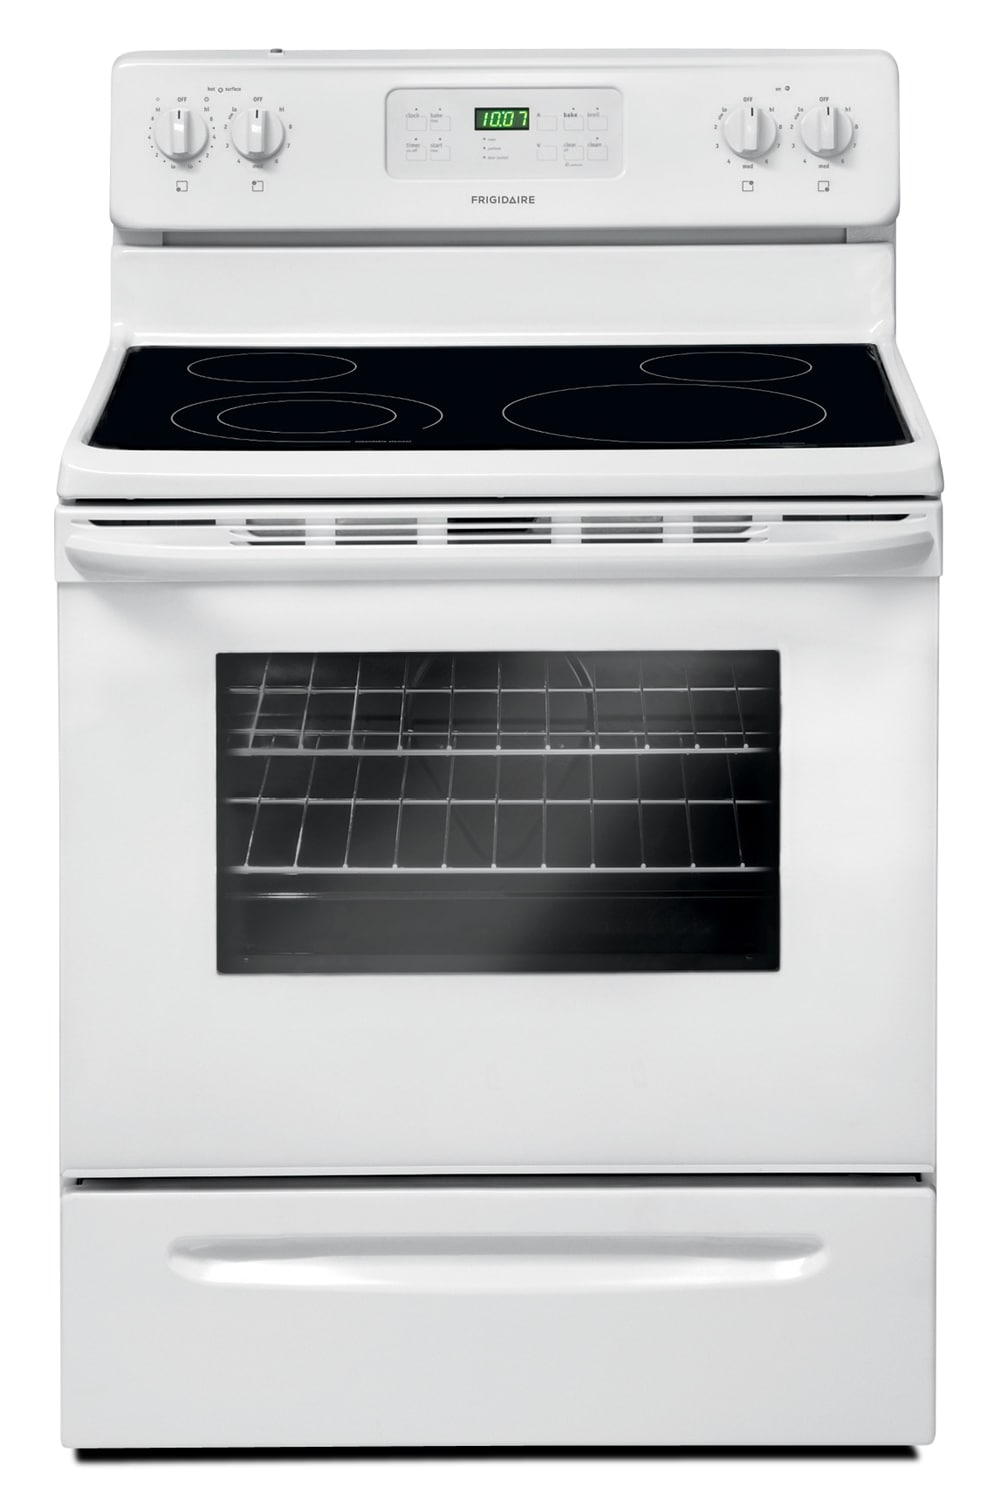 Frigidaire White Freestanding Electric Range (5.3 Cu. Ft.) - CFEF3018LW